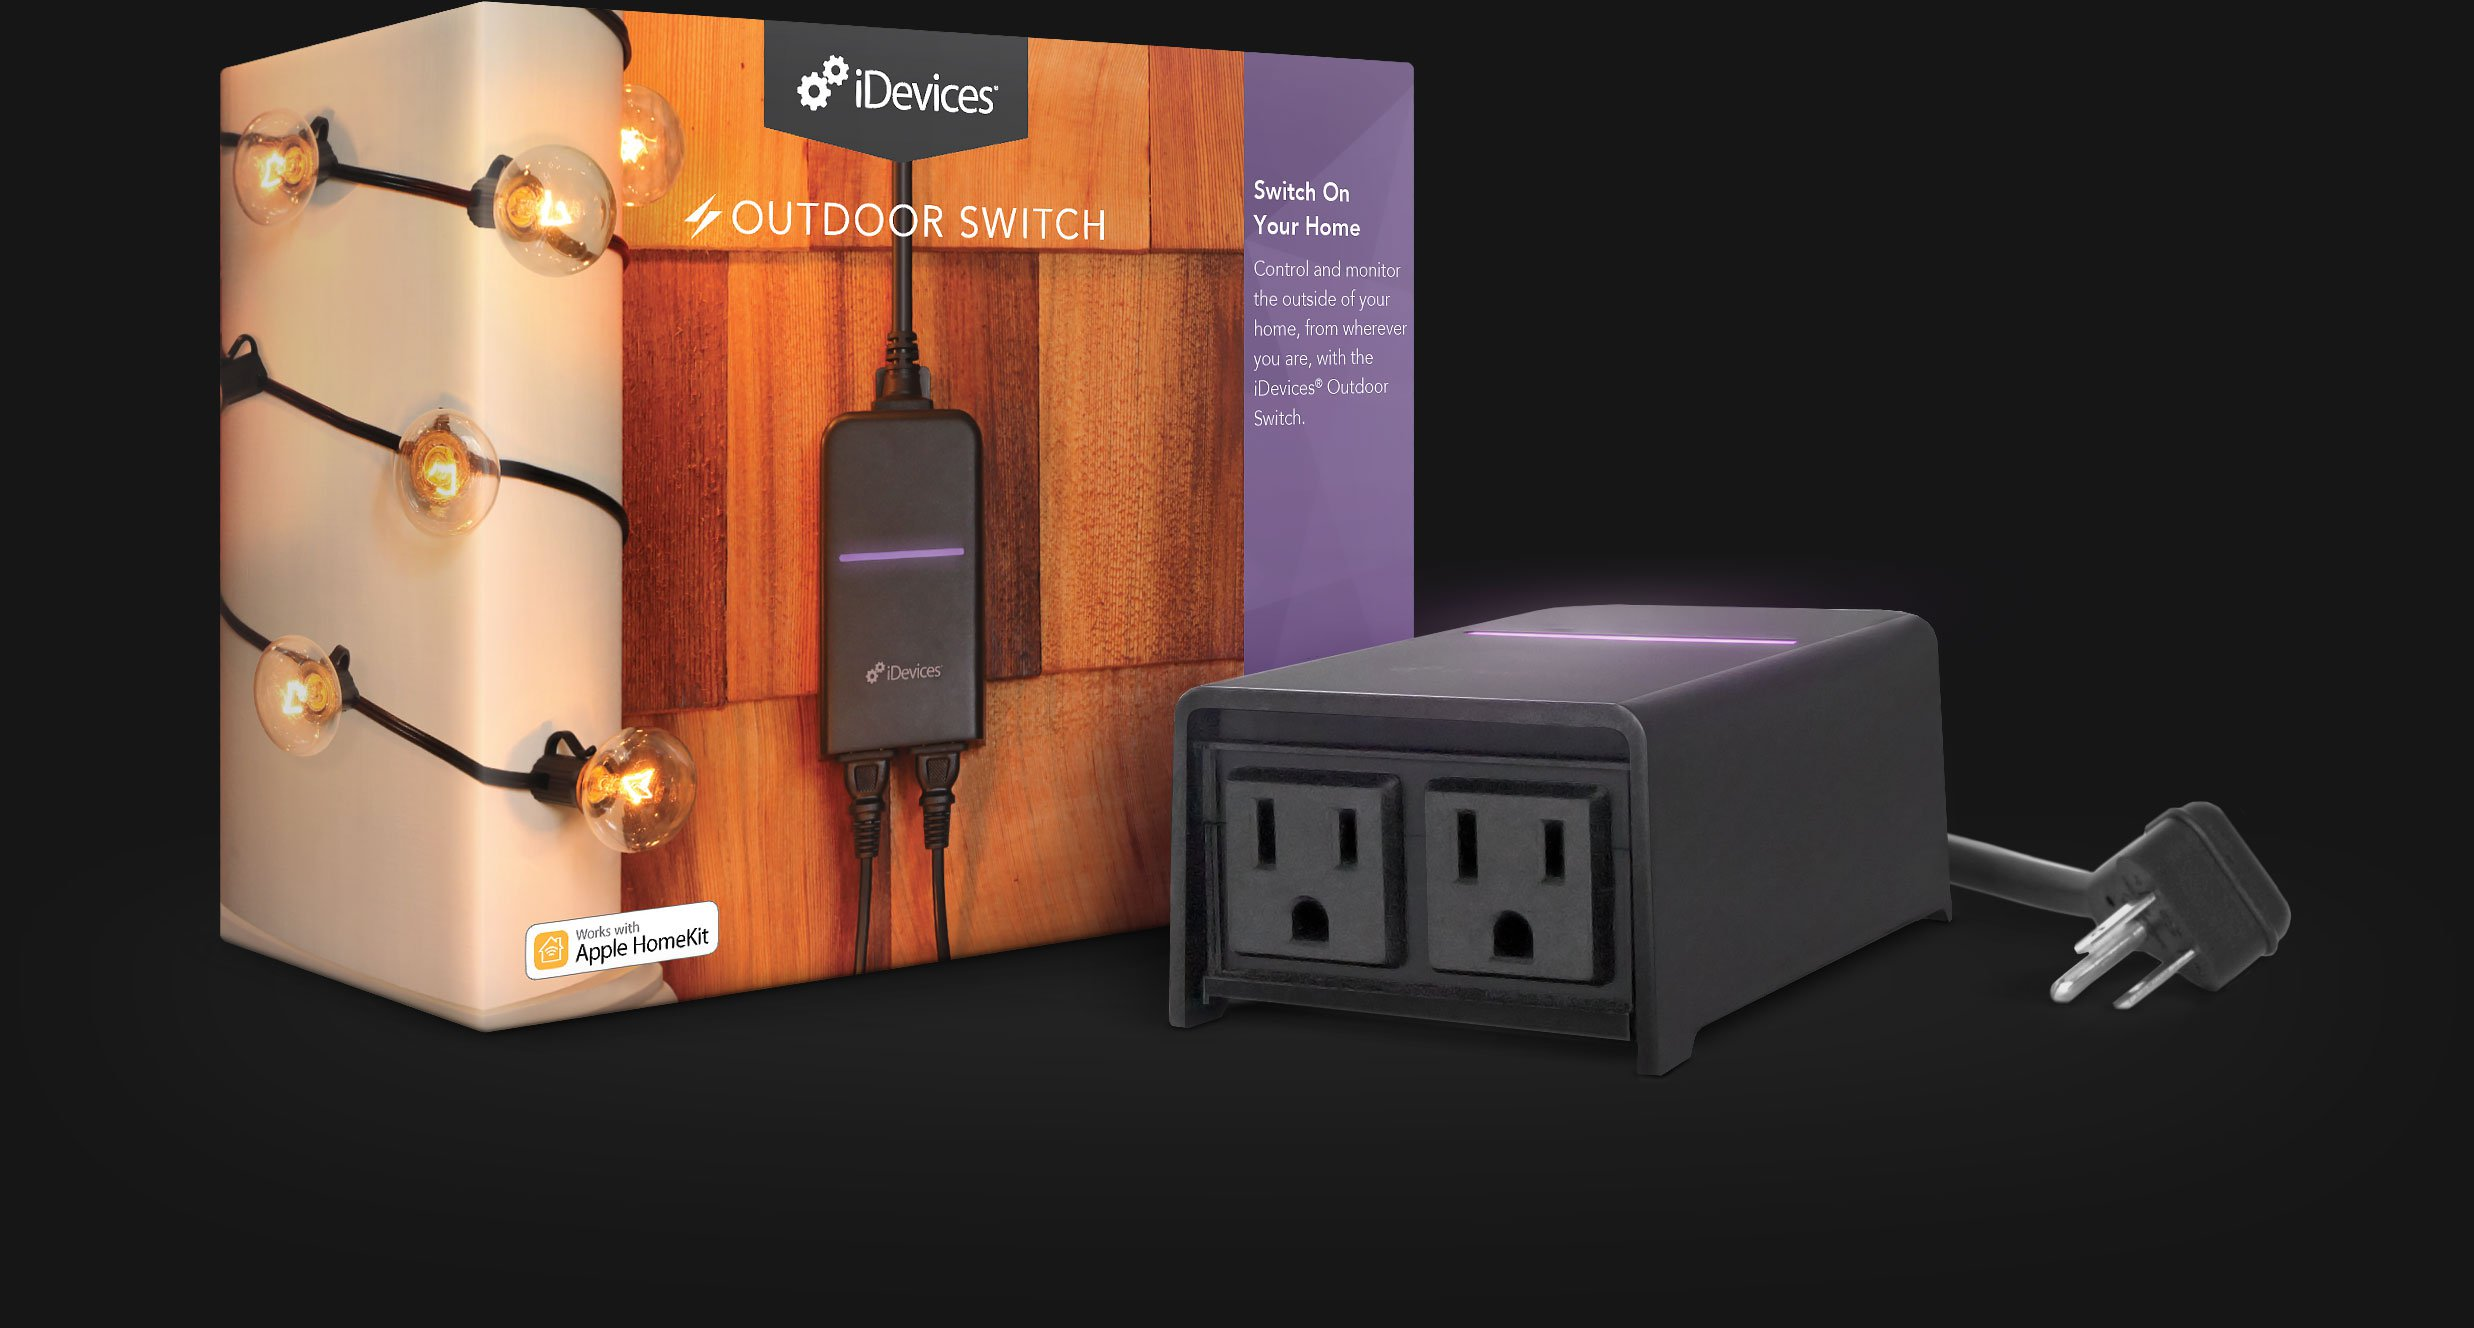 iDevices Outdoor Switch, Smart Plug, Connected Plug, Plug and Play, Apple Homekit, Amazon Alexa, Google Assistant, Google Play, App Store, Wi-Fi, Voice Control, Siri, Switch on your home, iOS, Samsung